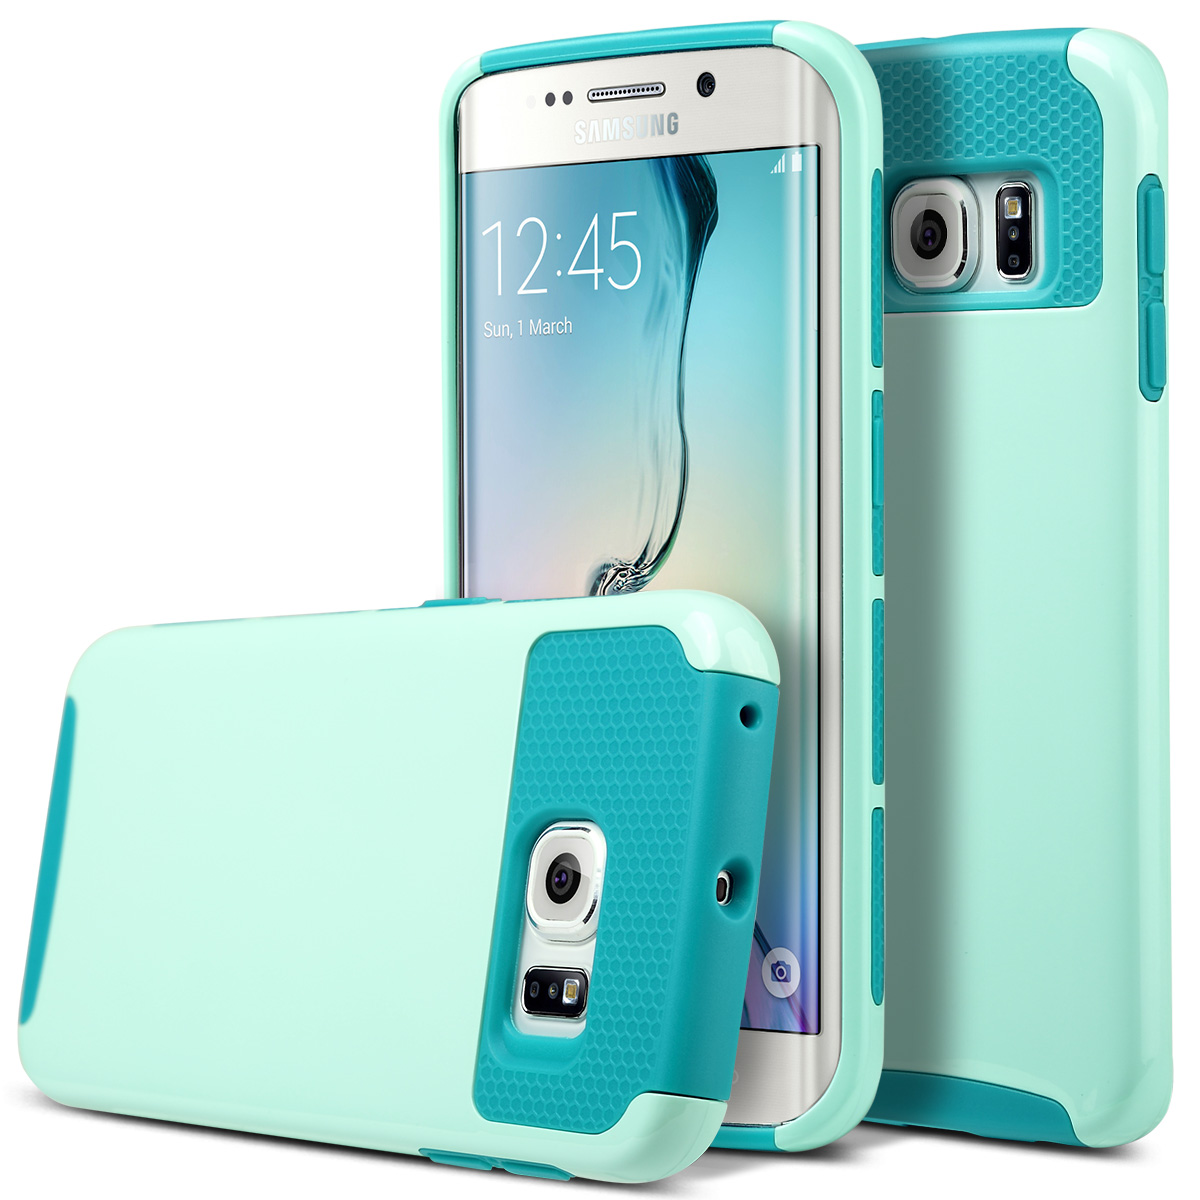 ULAK Galaxy S6 Edge Case, 2 in 1 Hybrid Dual Layer Protective Case Cover for Samsung Galaxy S6 Edge - Cyan+Light Cyan